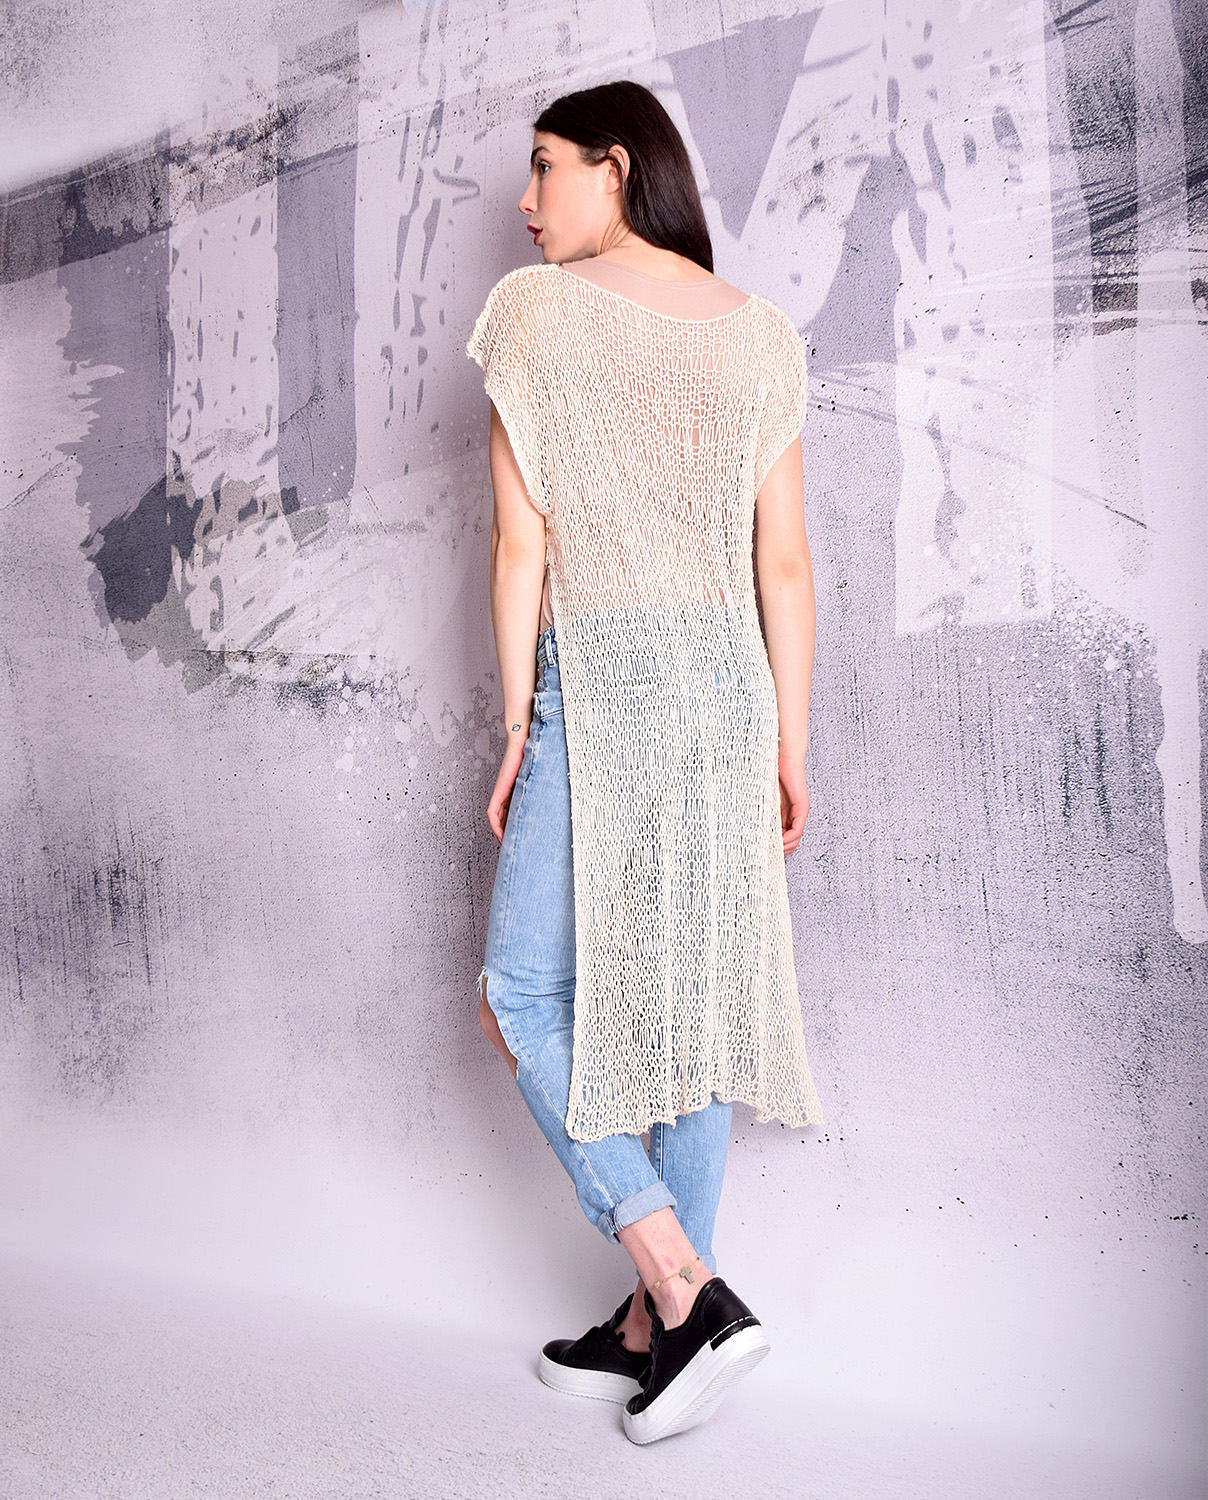 Hand knit mesh top,  asymmetric top, sheer top, sheer vest, long sleeveless top, wrap top, shrug, hand knit tunic by UrbanMood - UM-K112-RS